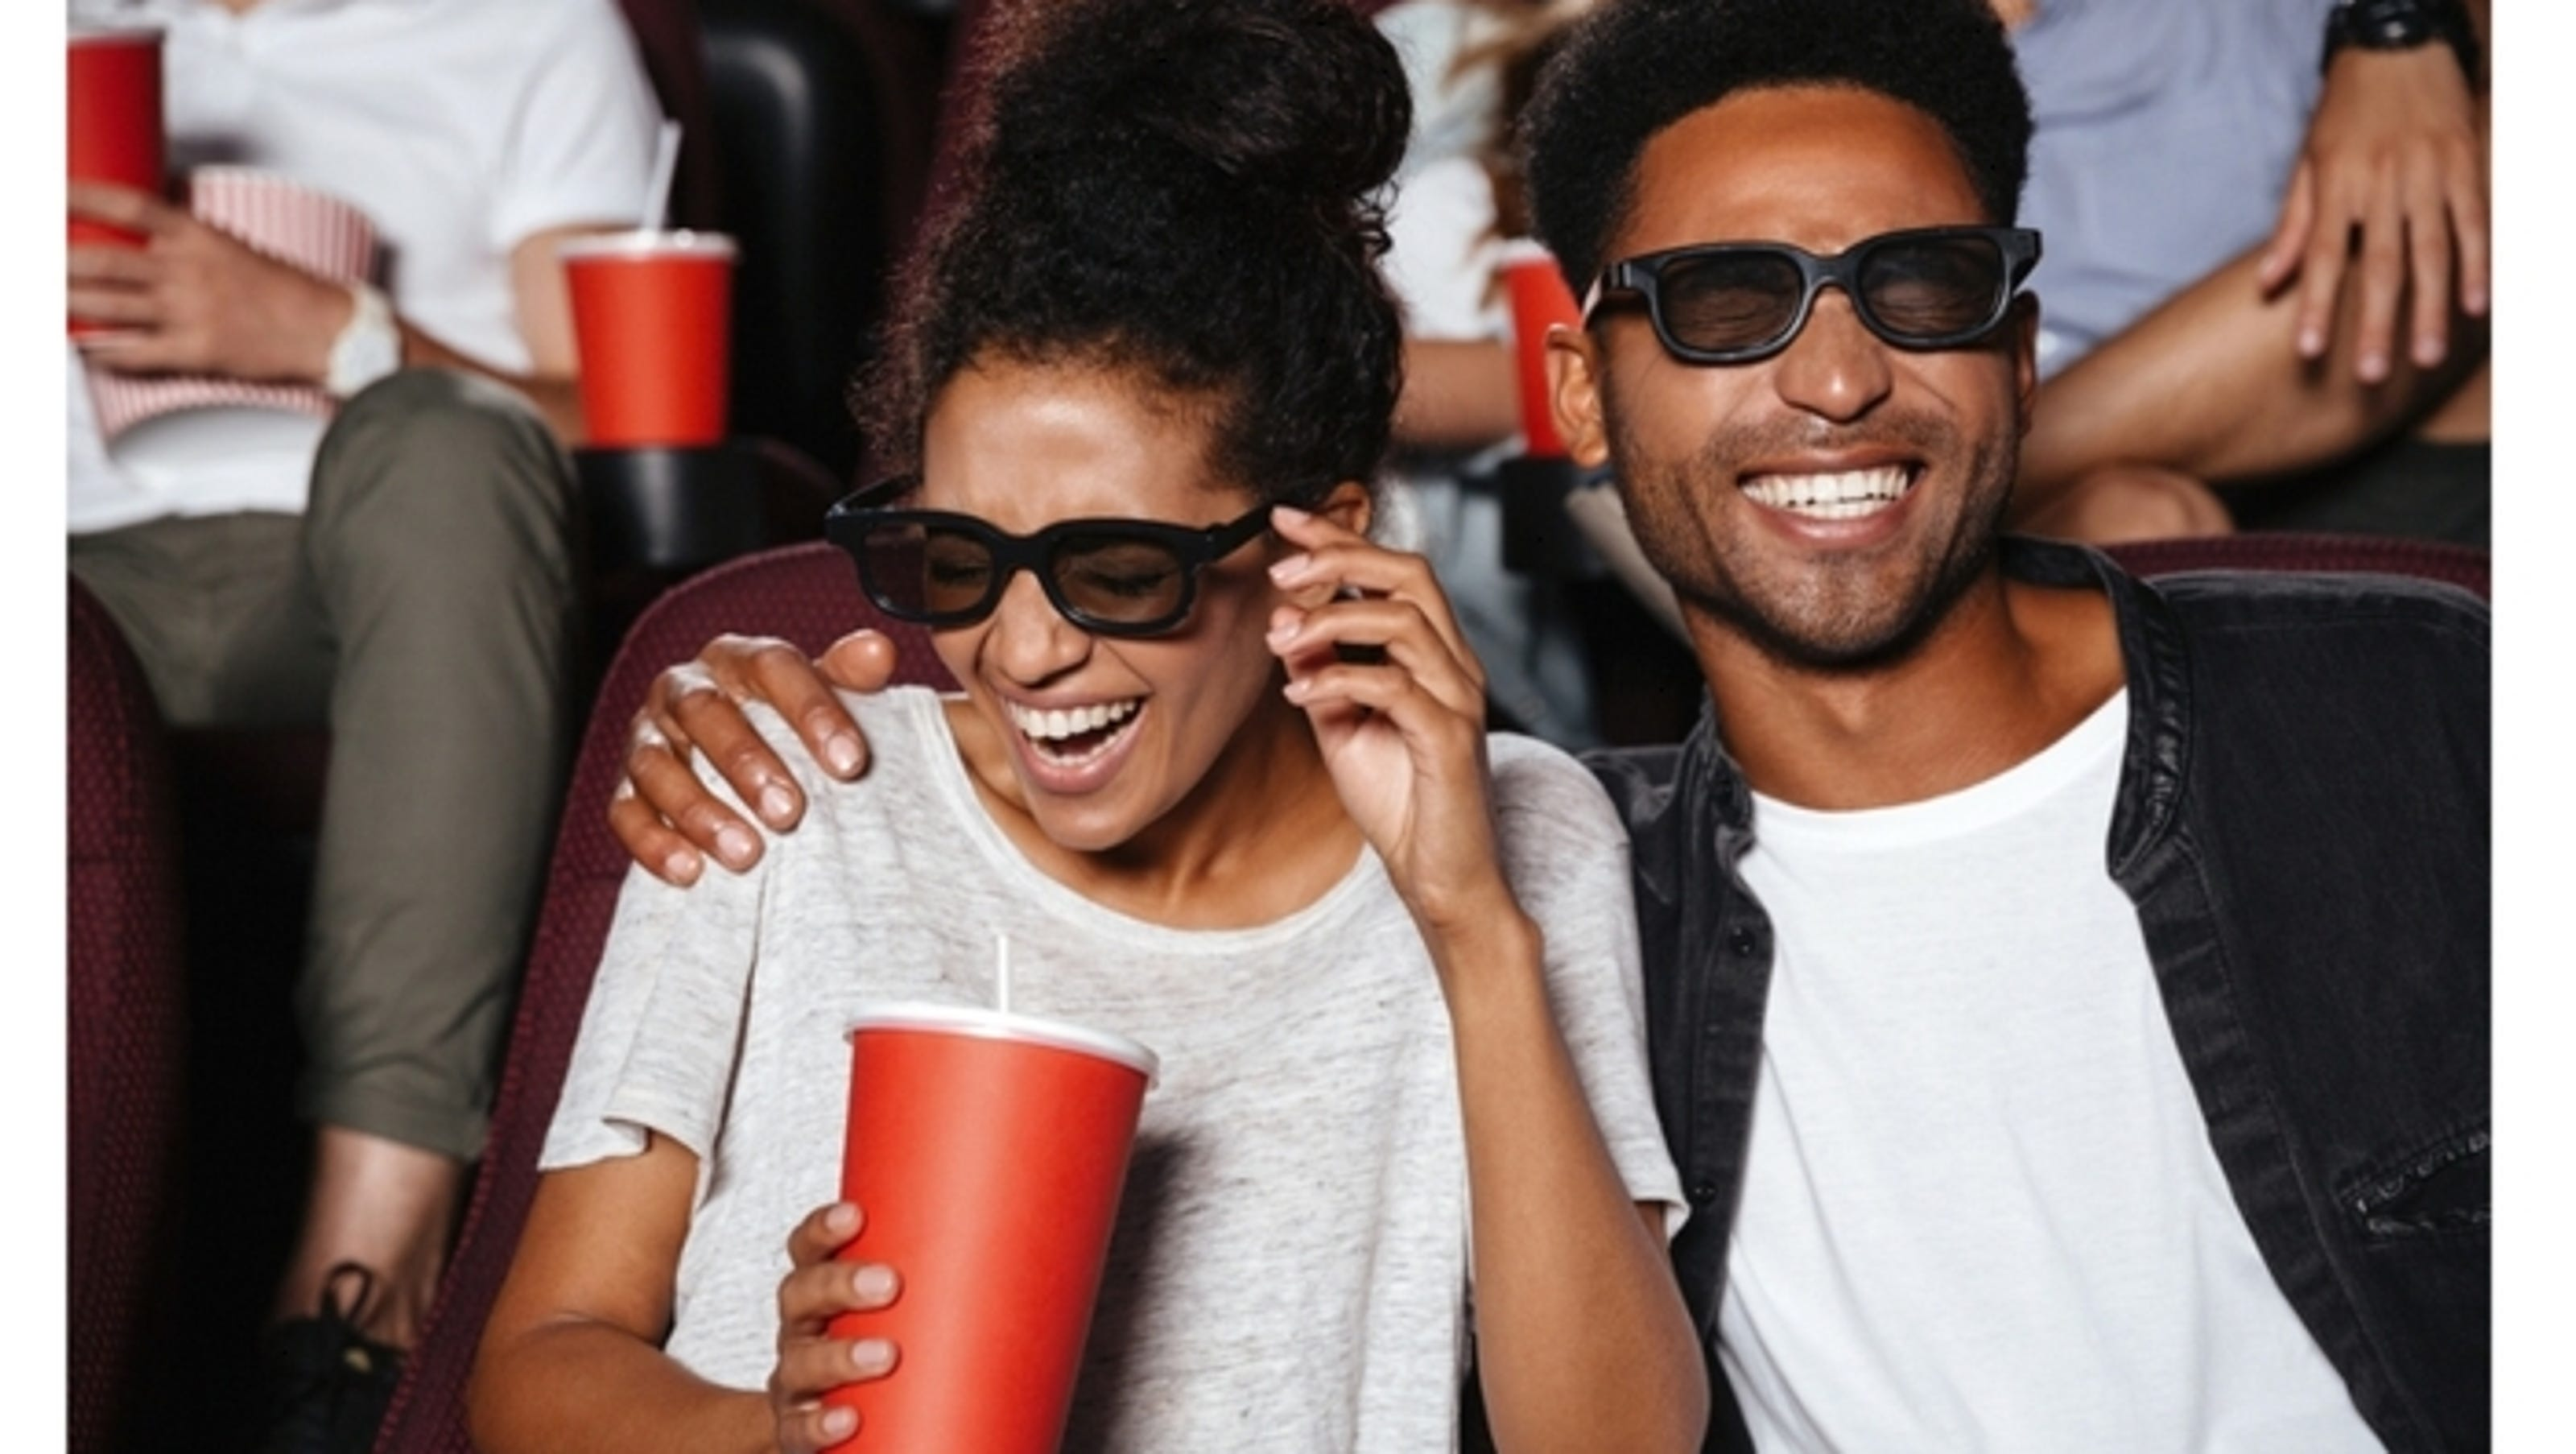 AMC ReAdmit Passes, AMC GuestFirst Passes, AMC Guest Passes, and AMC Gold Experience tickets are accepted anytime, for any movie. However, surcharges may apply for special events and for enhanced movie experiences, such as RealD 3D and IMAX films.